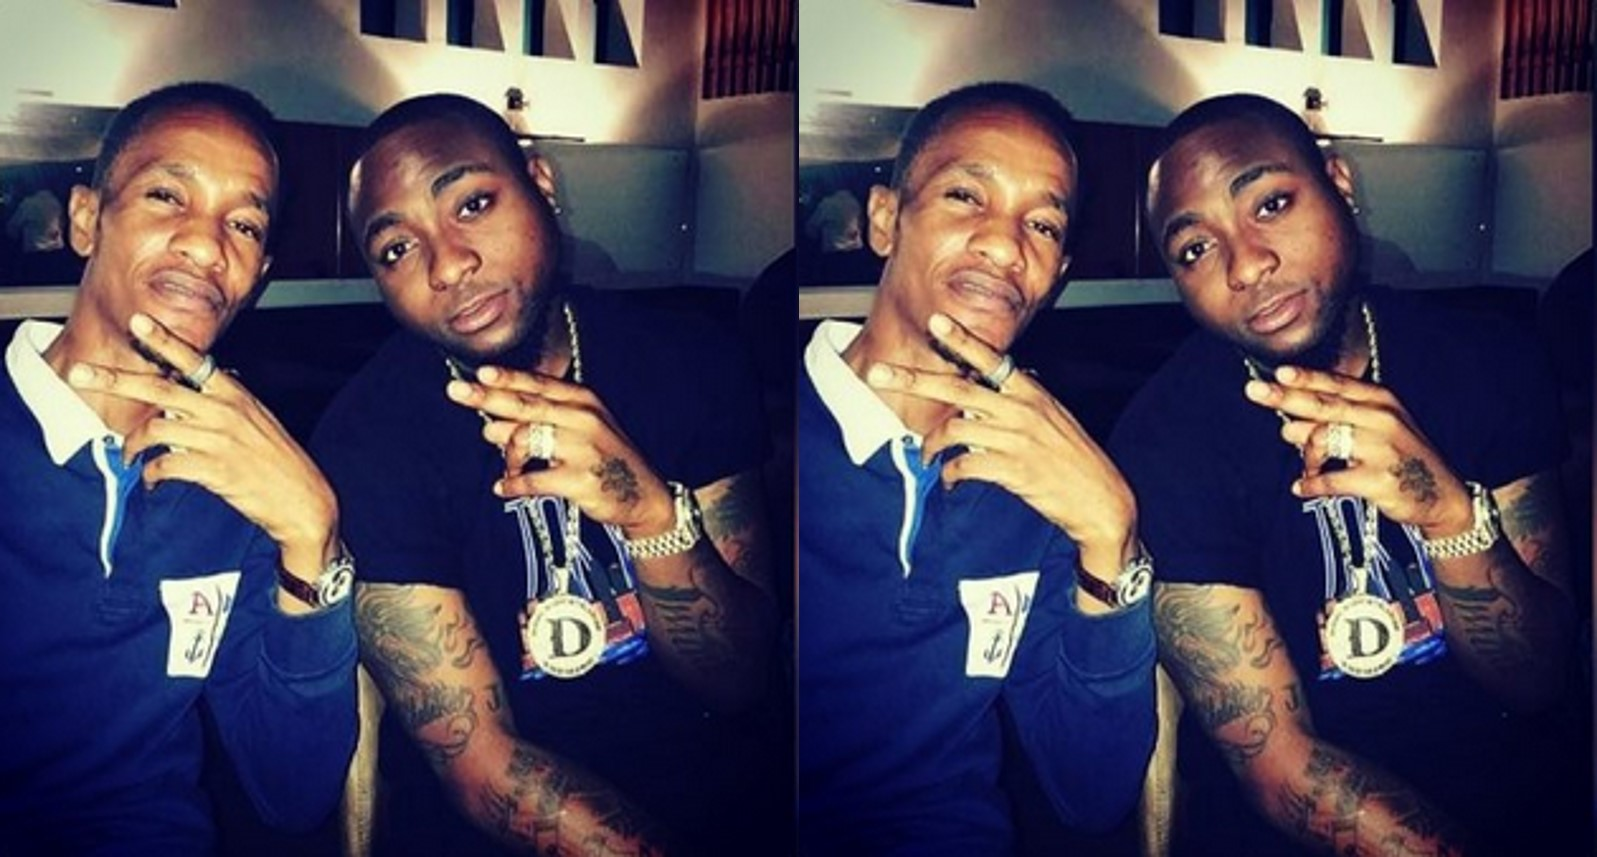 Davido Finally speaks after Tagbo's autopsy report revealed that he died of suffocation